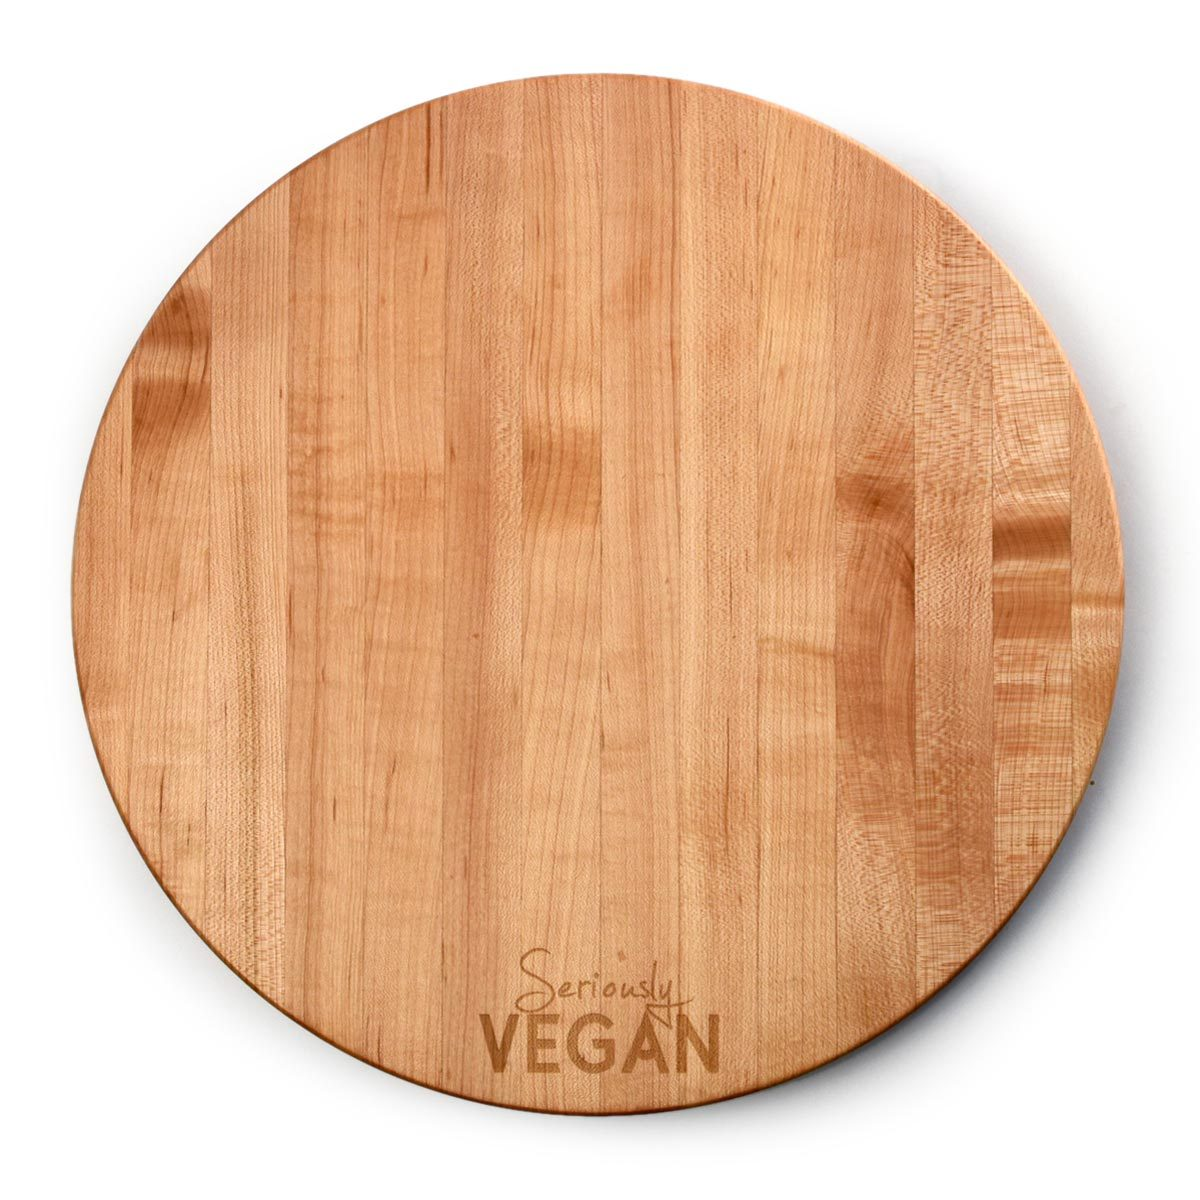 Vegan Products - cutting board